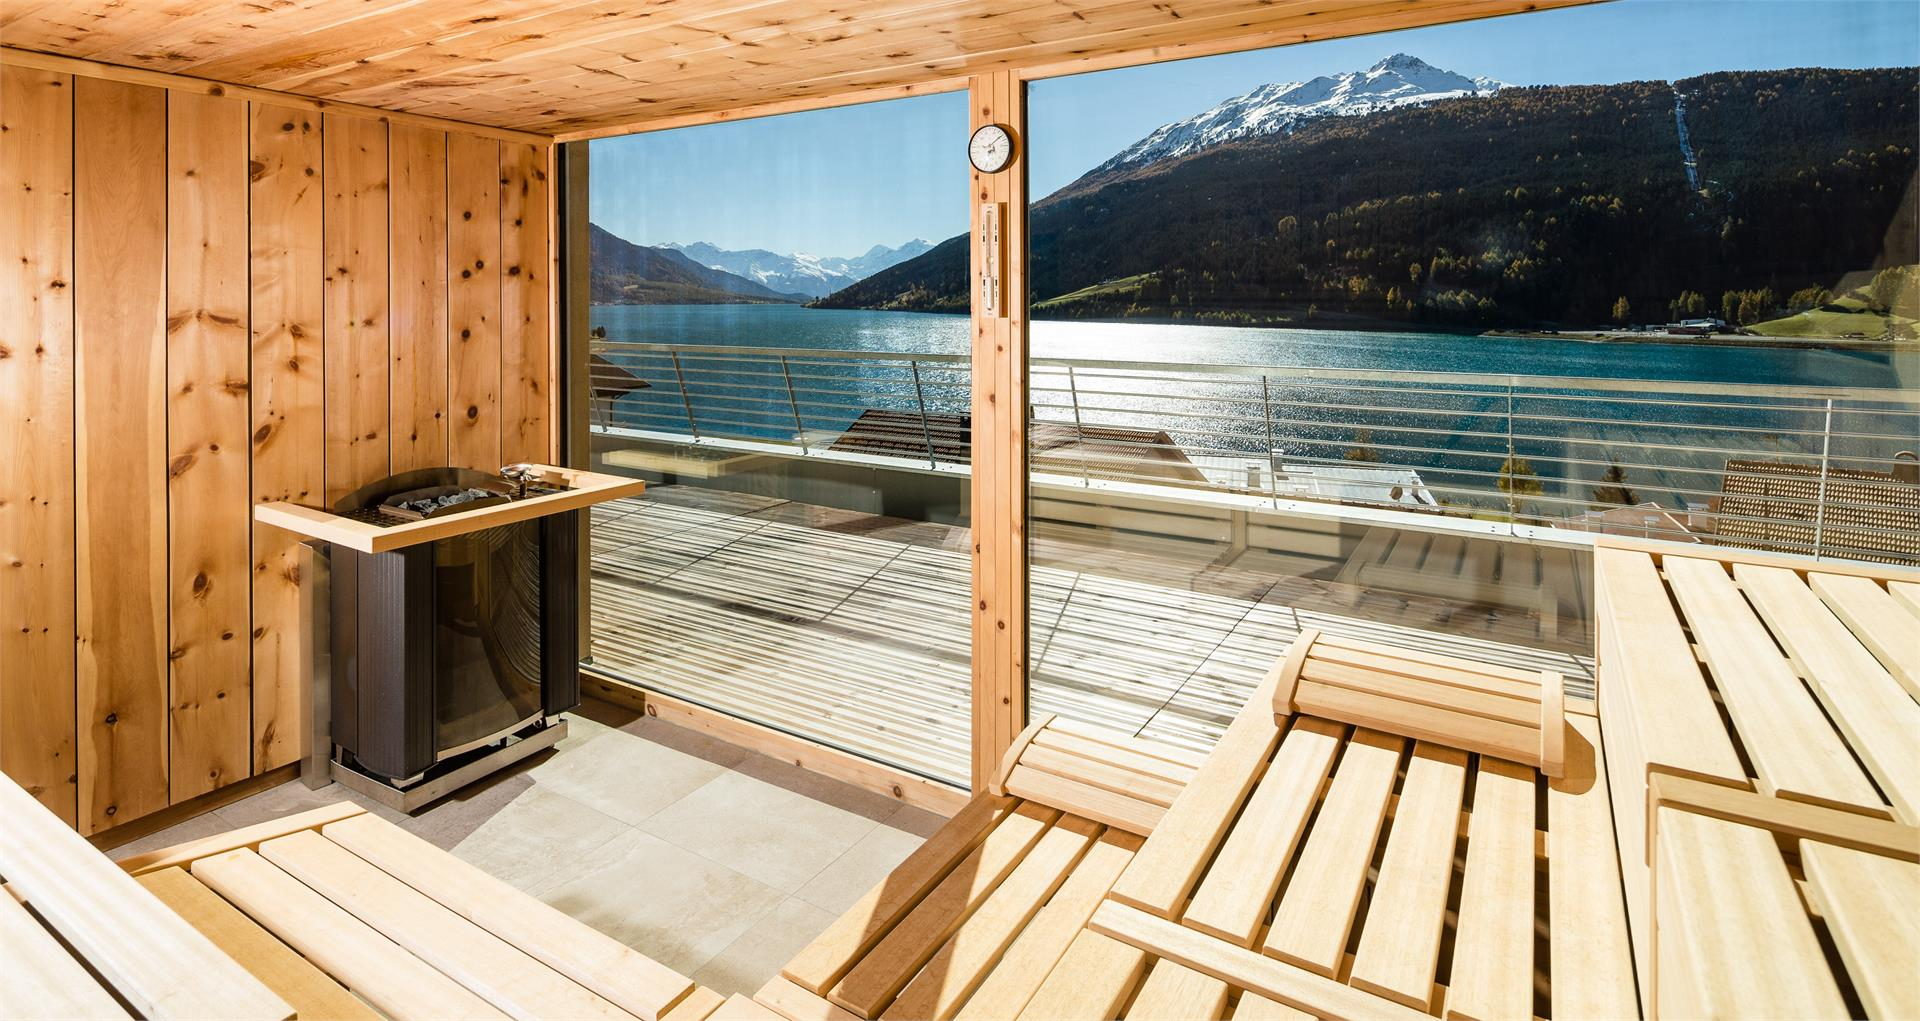 Bio Zirm Panorama Sauna with view on the lake resia and the king Ortler